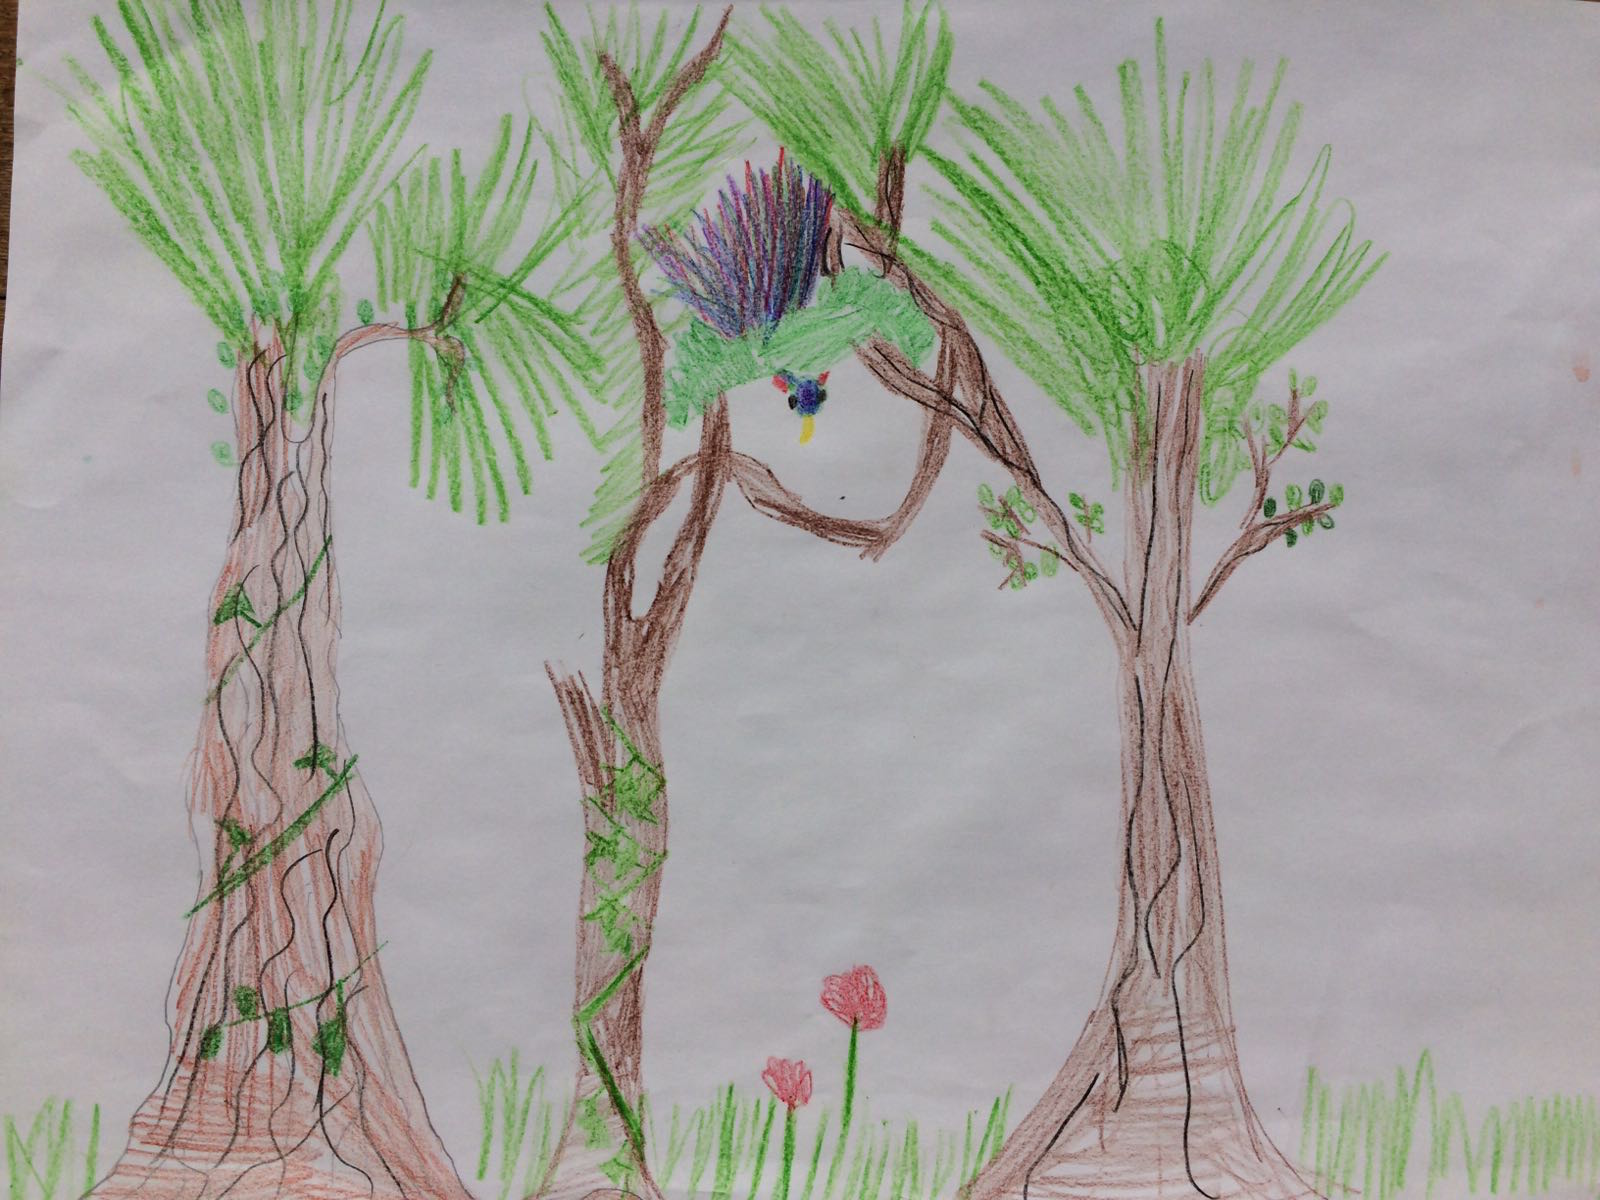 Parrot in the park, by Toran